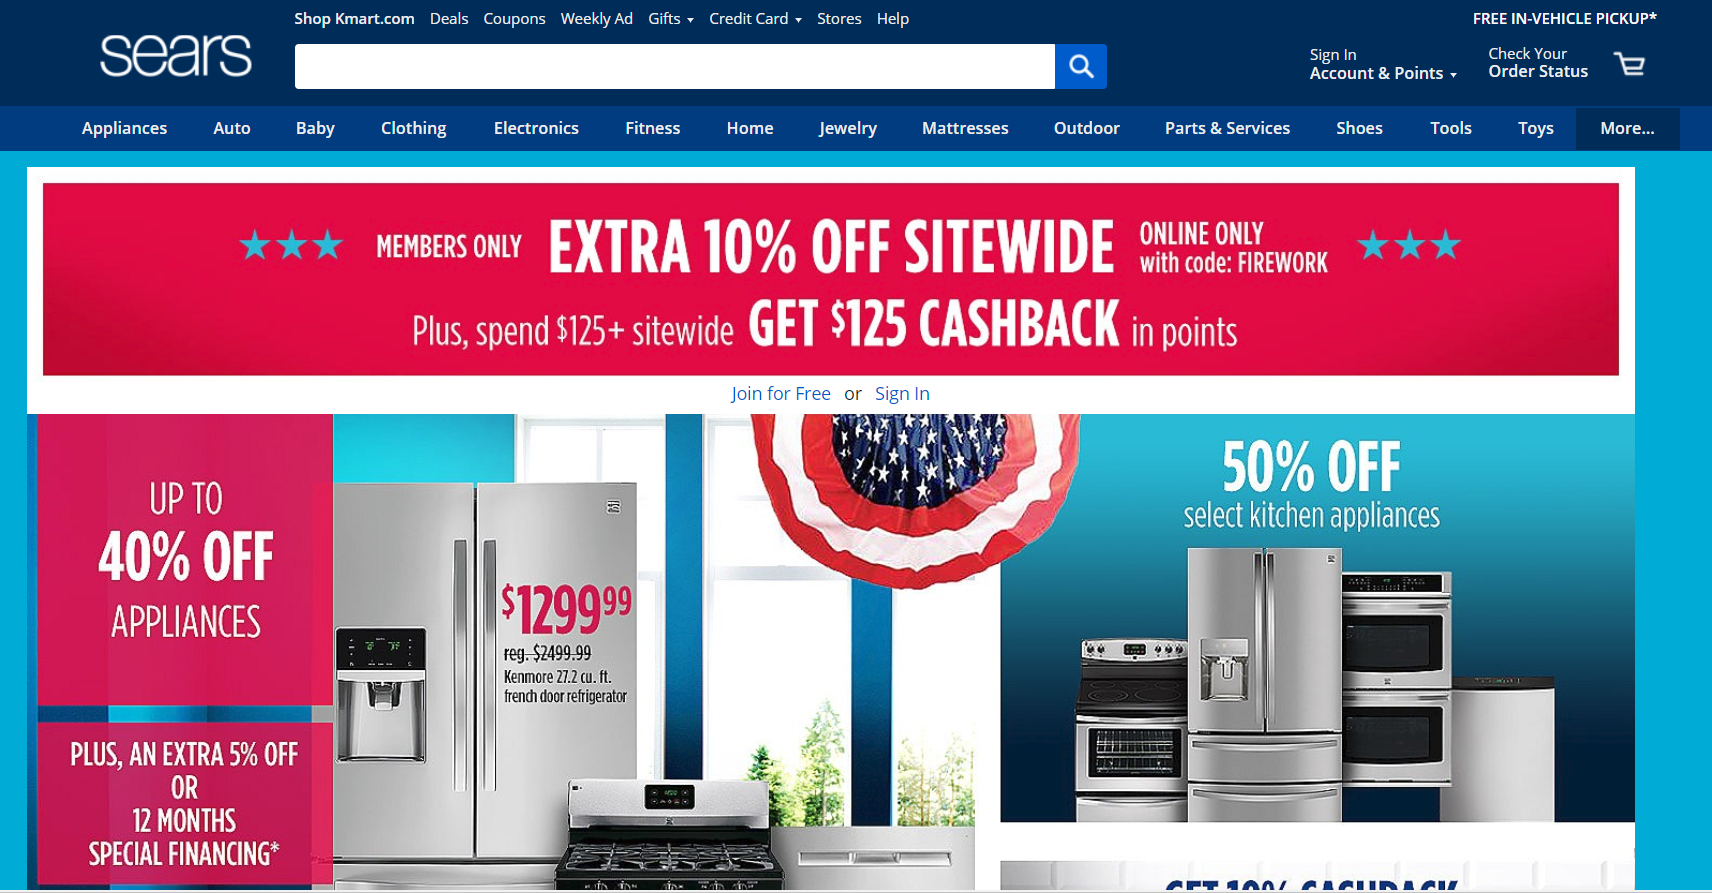 sears-webpage-example